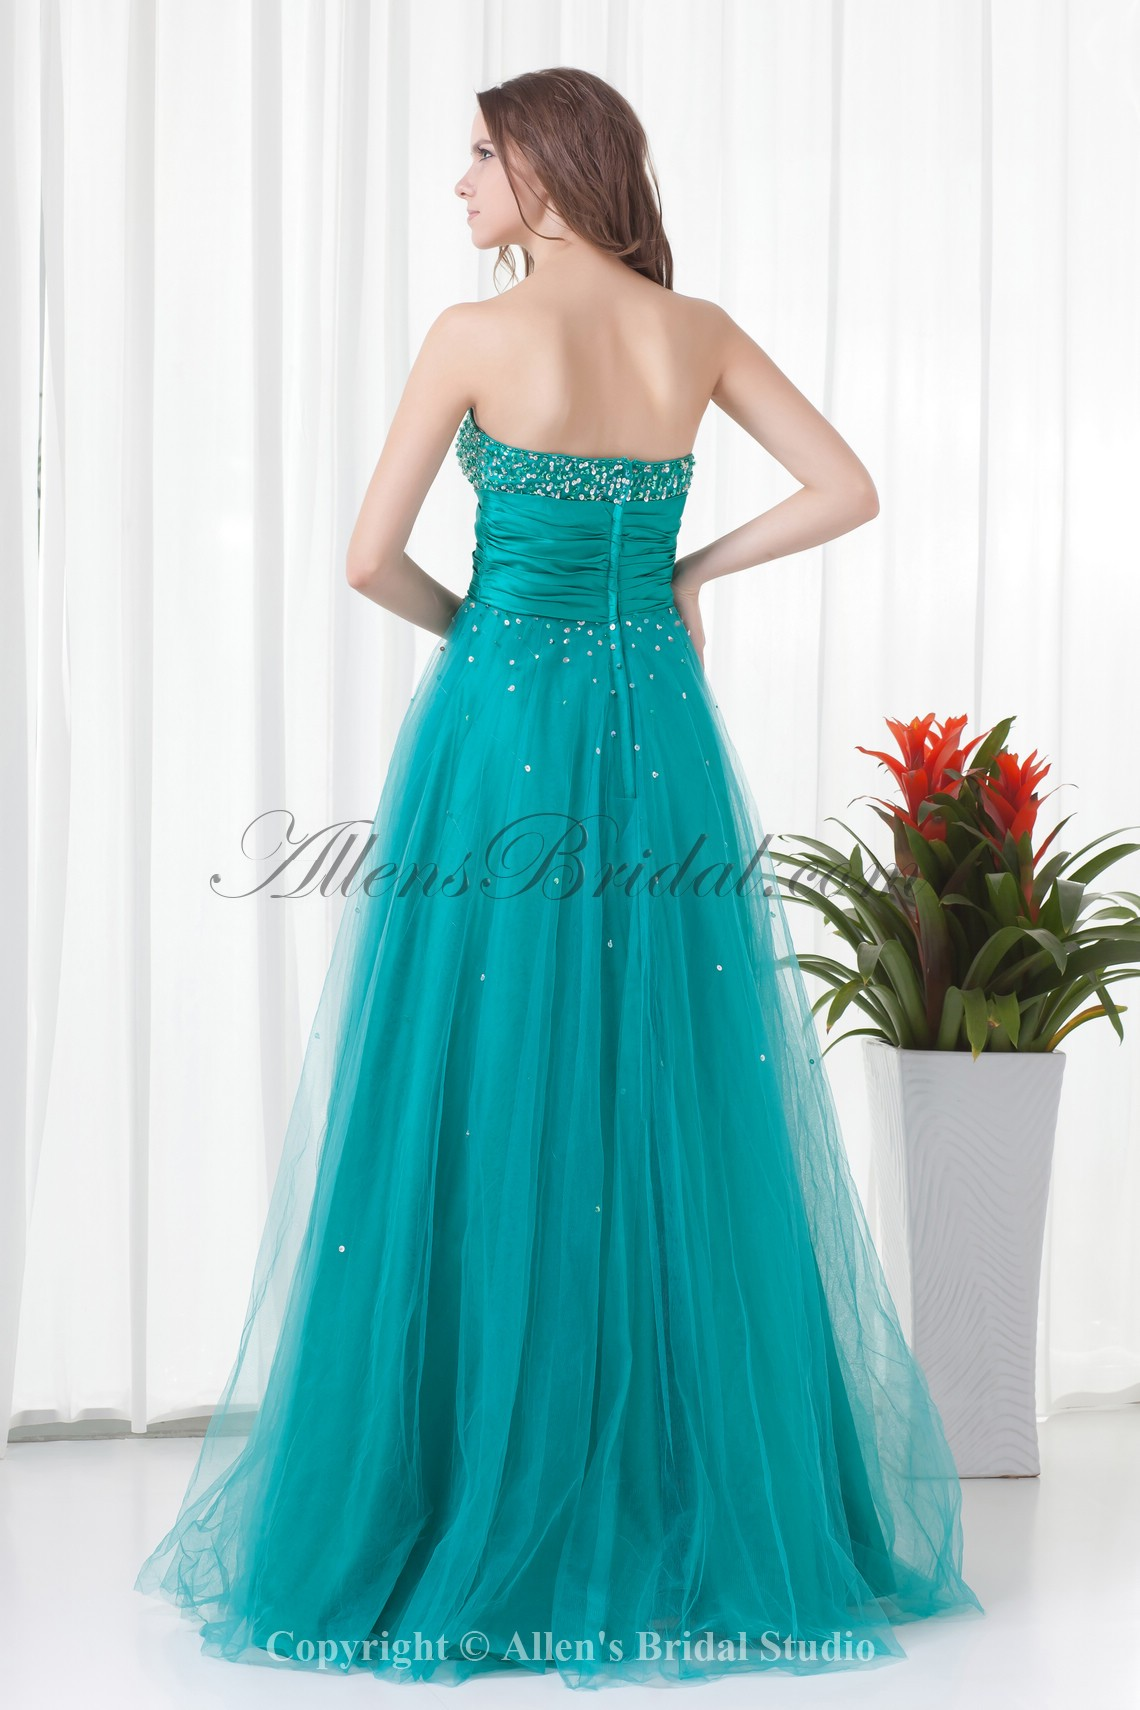 /323-2586/satin-and-net-strapless-a-line-floor-length-sequins-prom-dress.jpg